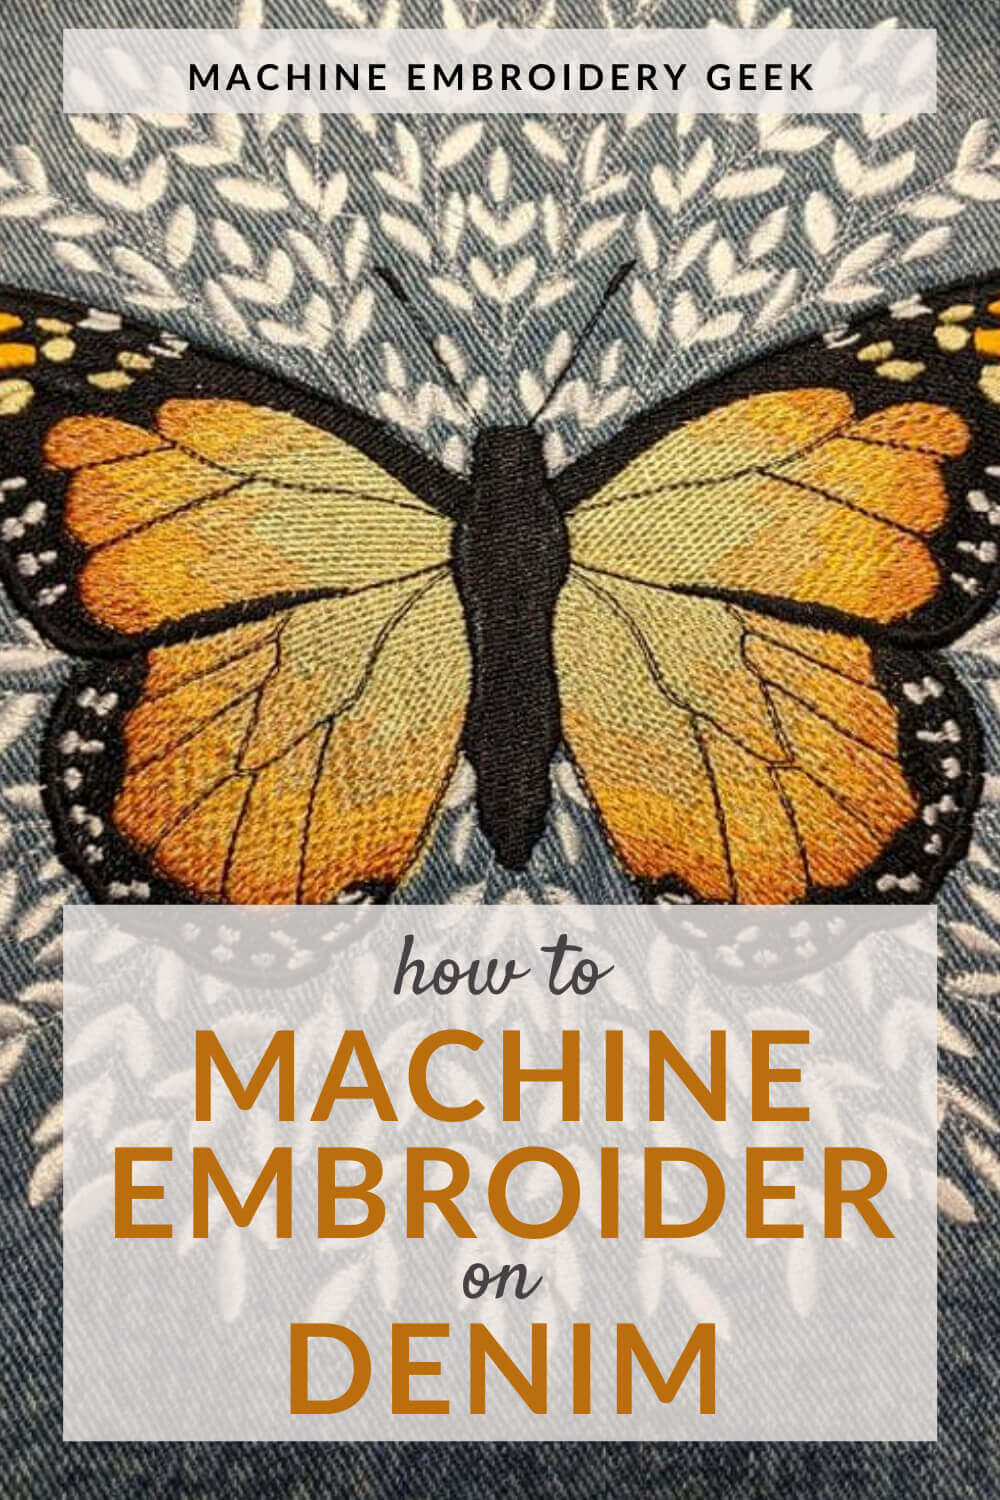 how to machine embroider on denim